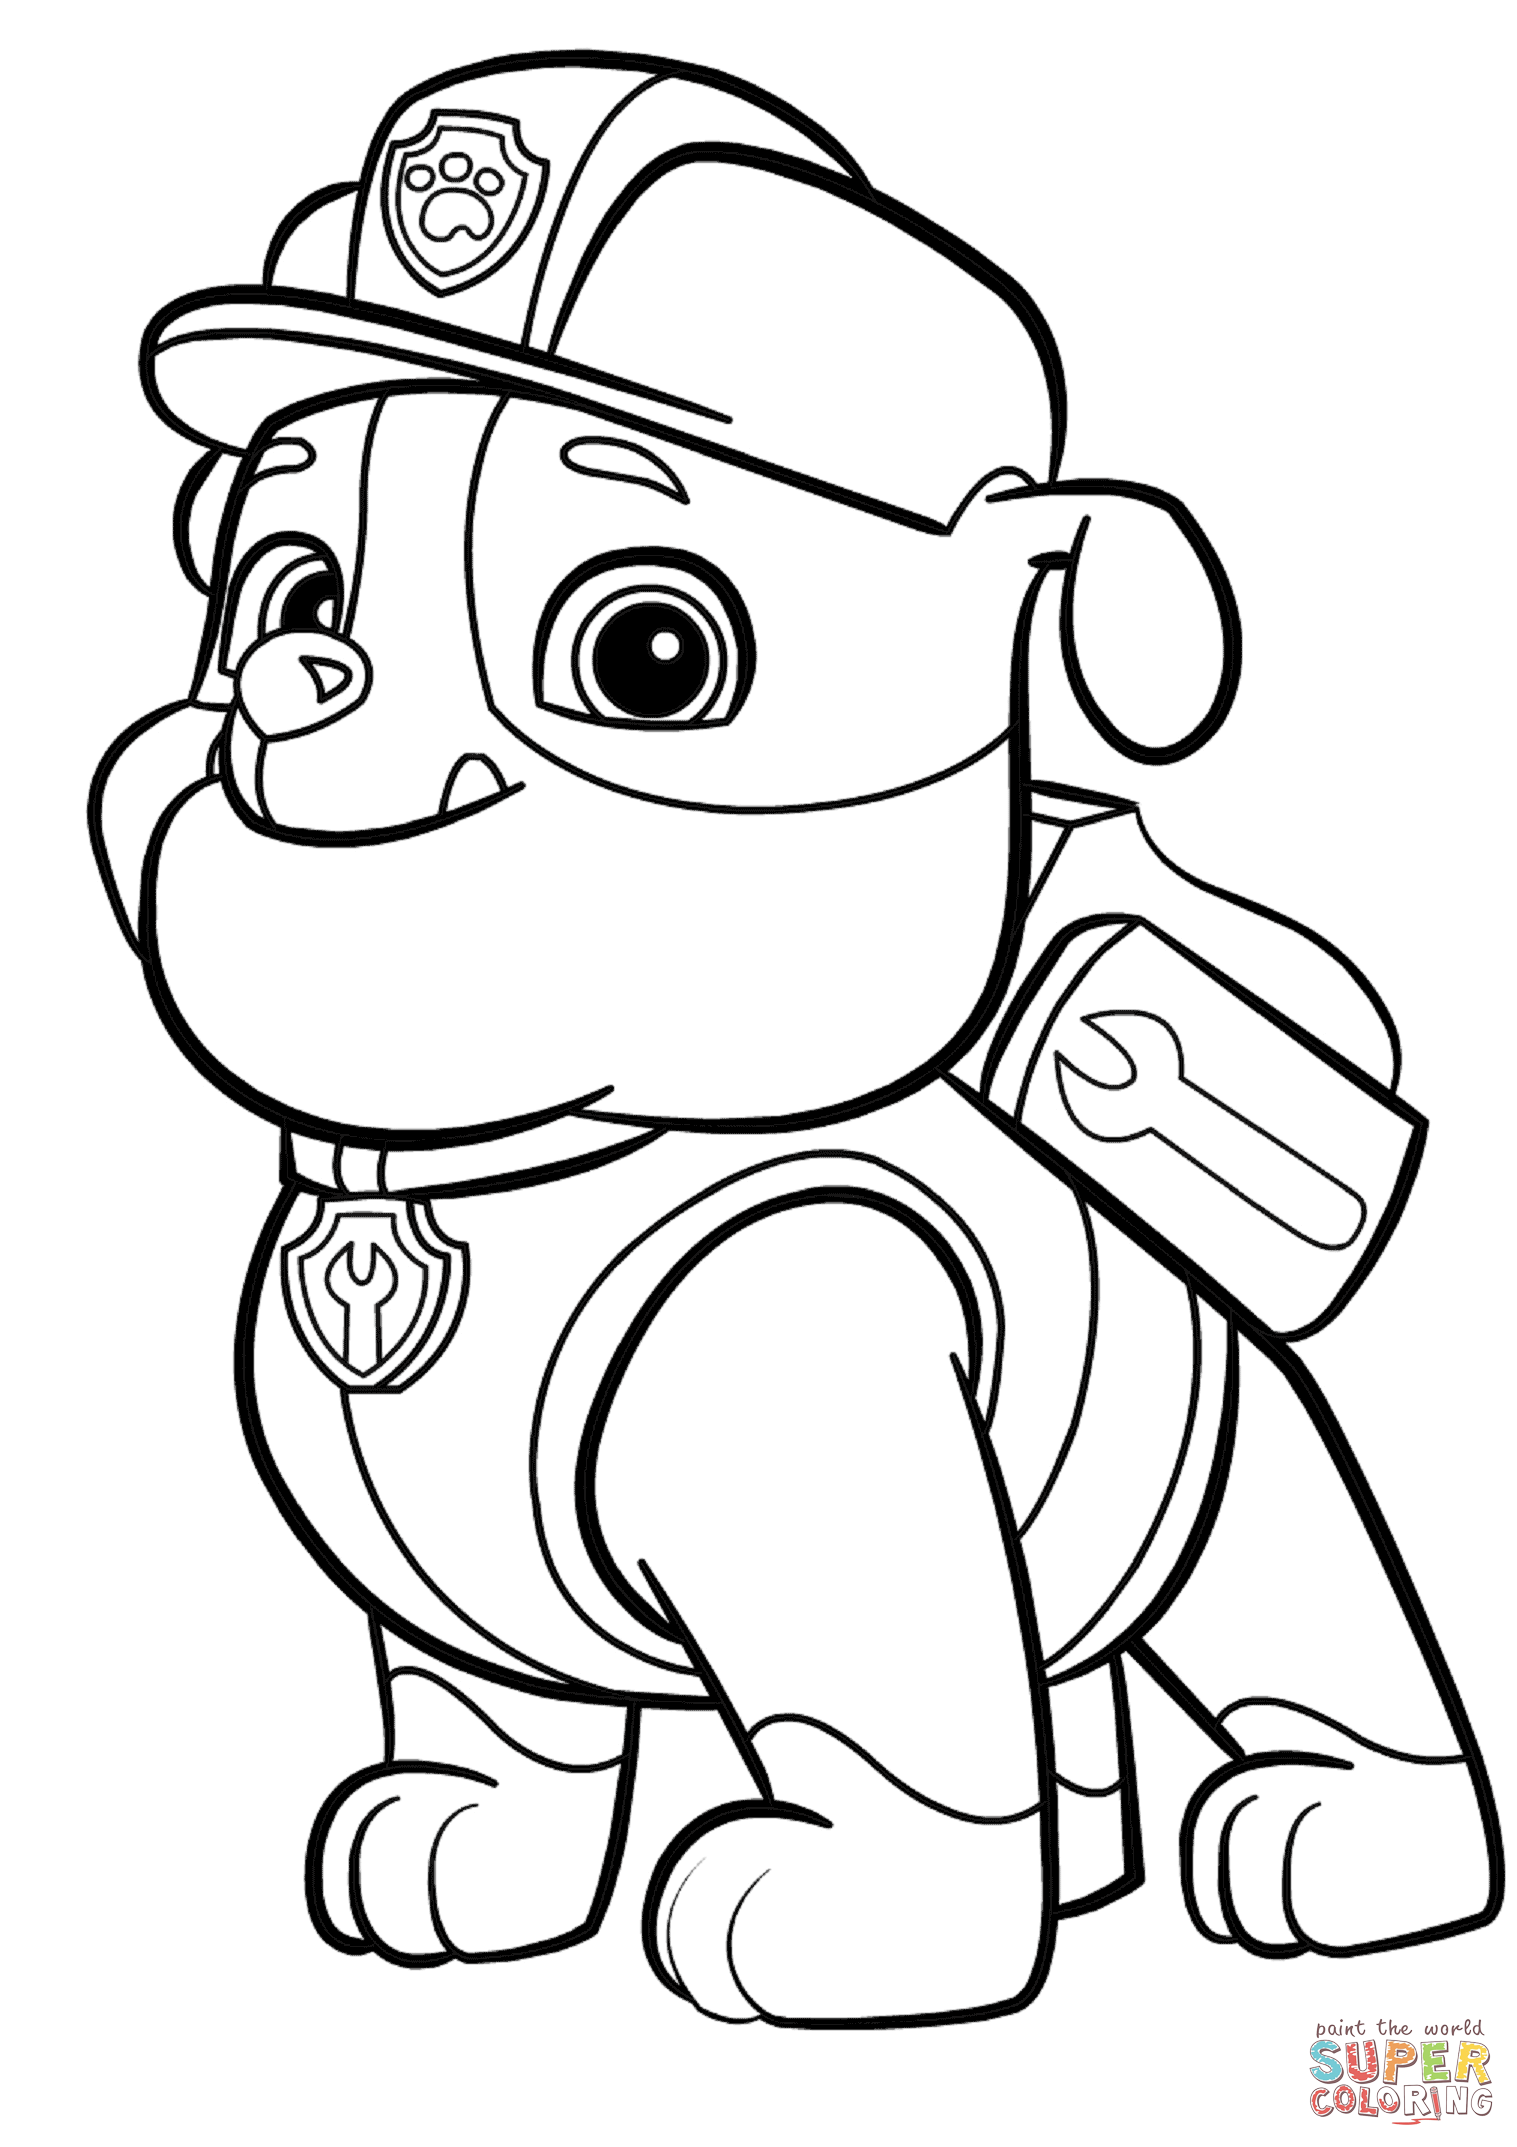 paw patrol coloring outline paw patrol coloring pages downoadable k5 worksheets patrol paw outline coloring